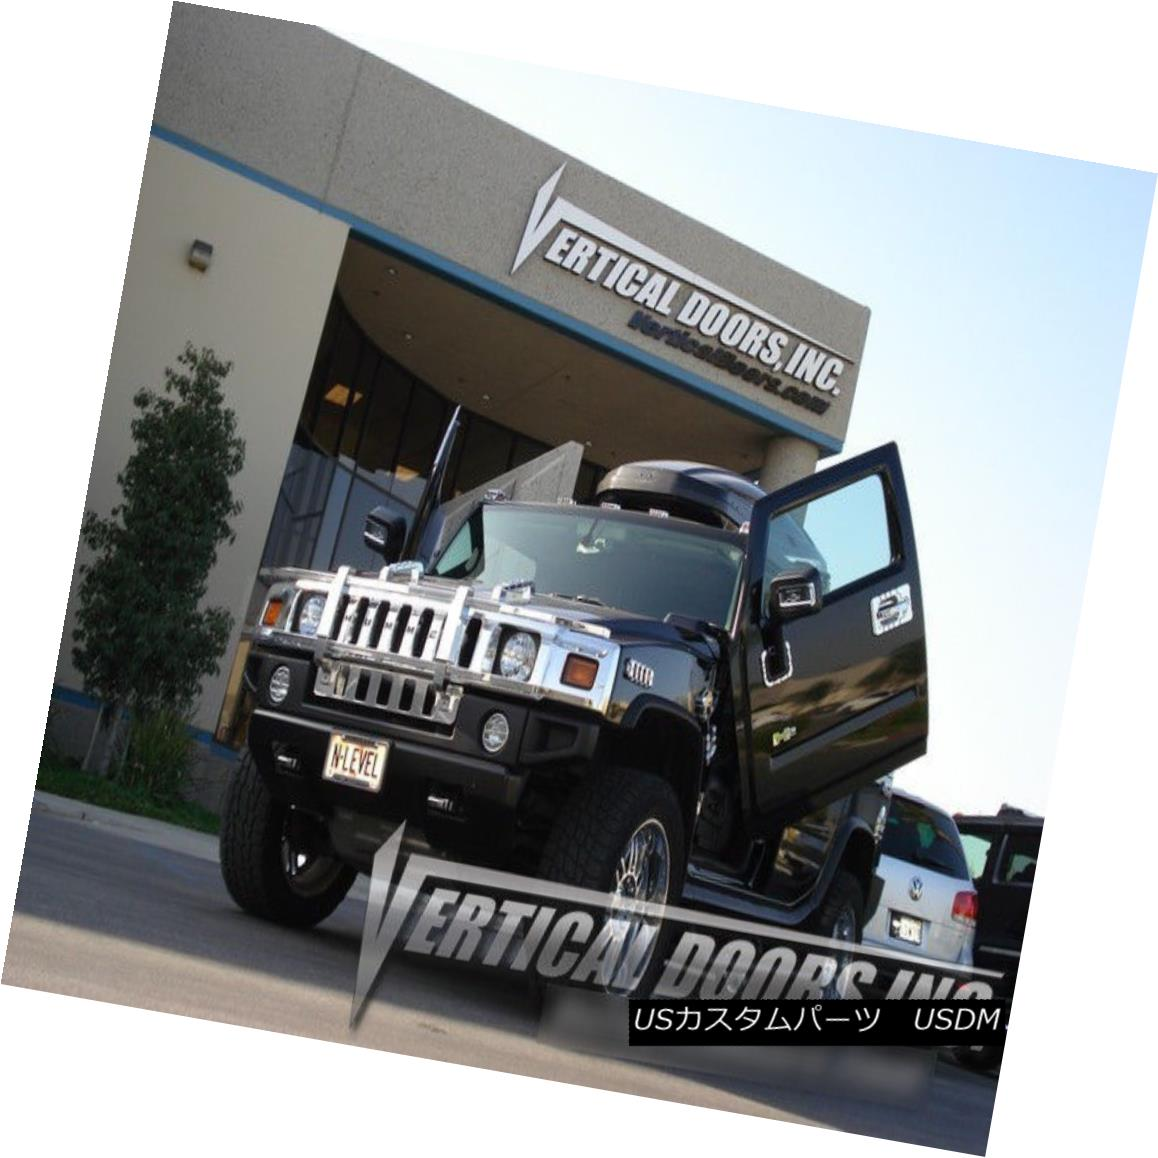 ガルウィングキット Vertical Doors Inc. Bolt-On Lambo Kit for Hummer H2 03-09 Vertical Doors Inc. Hummer H2用Bolt-On Lamboキット03-09